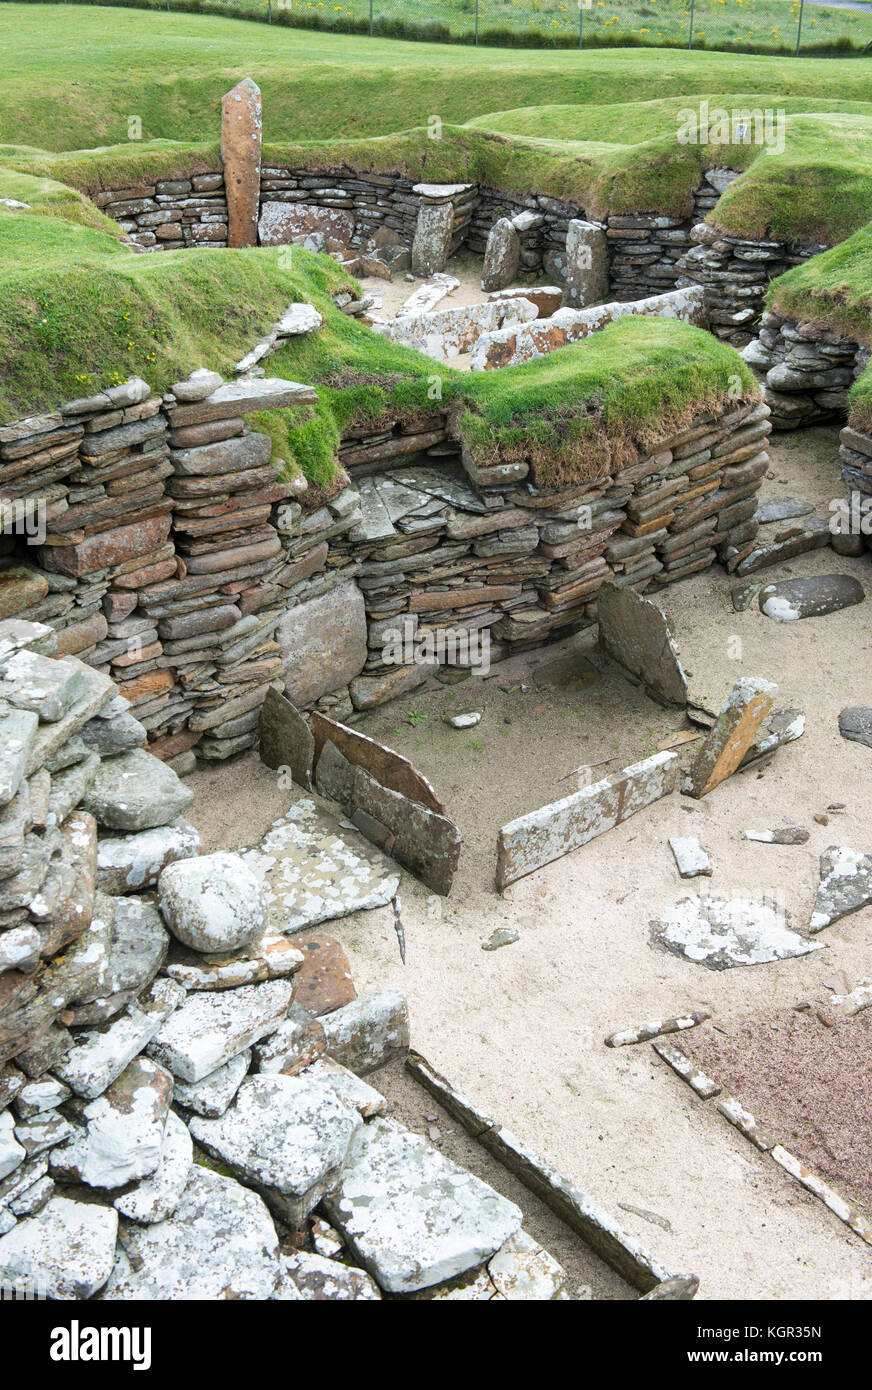 Skara Brae, a stone-built Neolithic village located on the Bay of Skaill on the west coast of the Orkney Islands - Stock Image